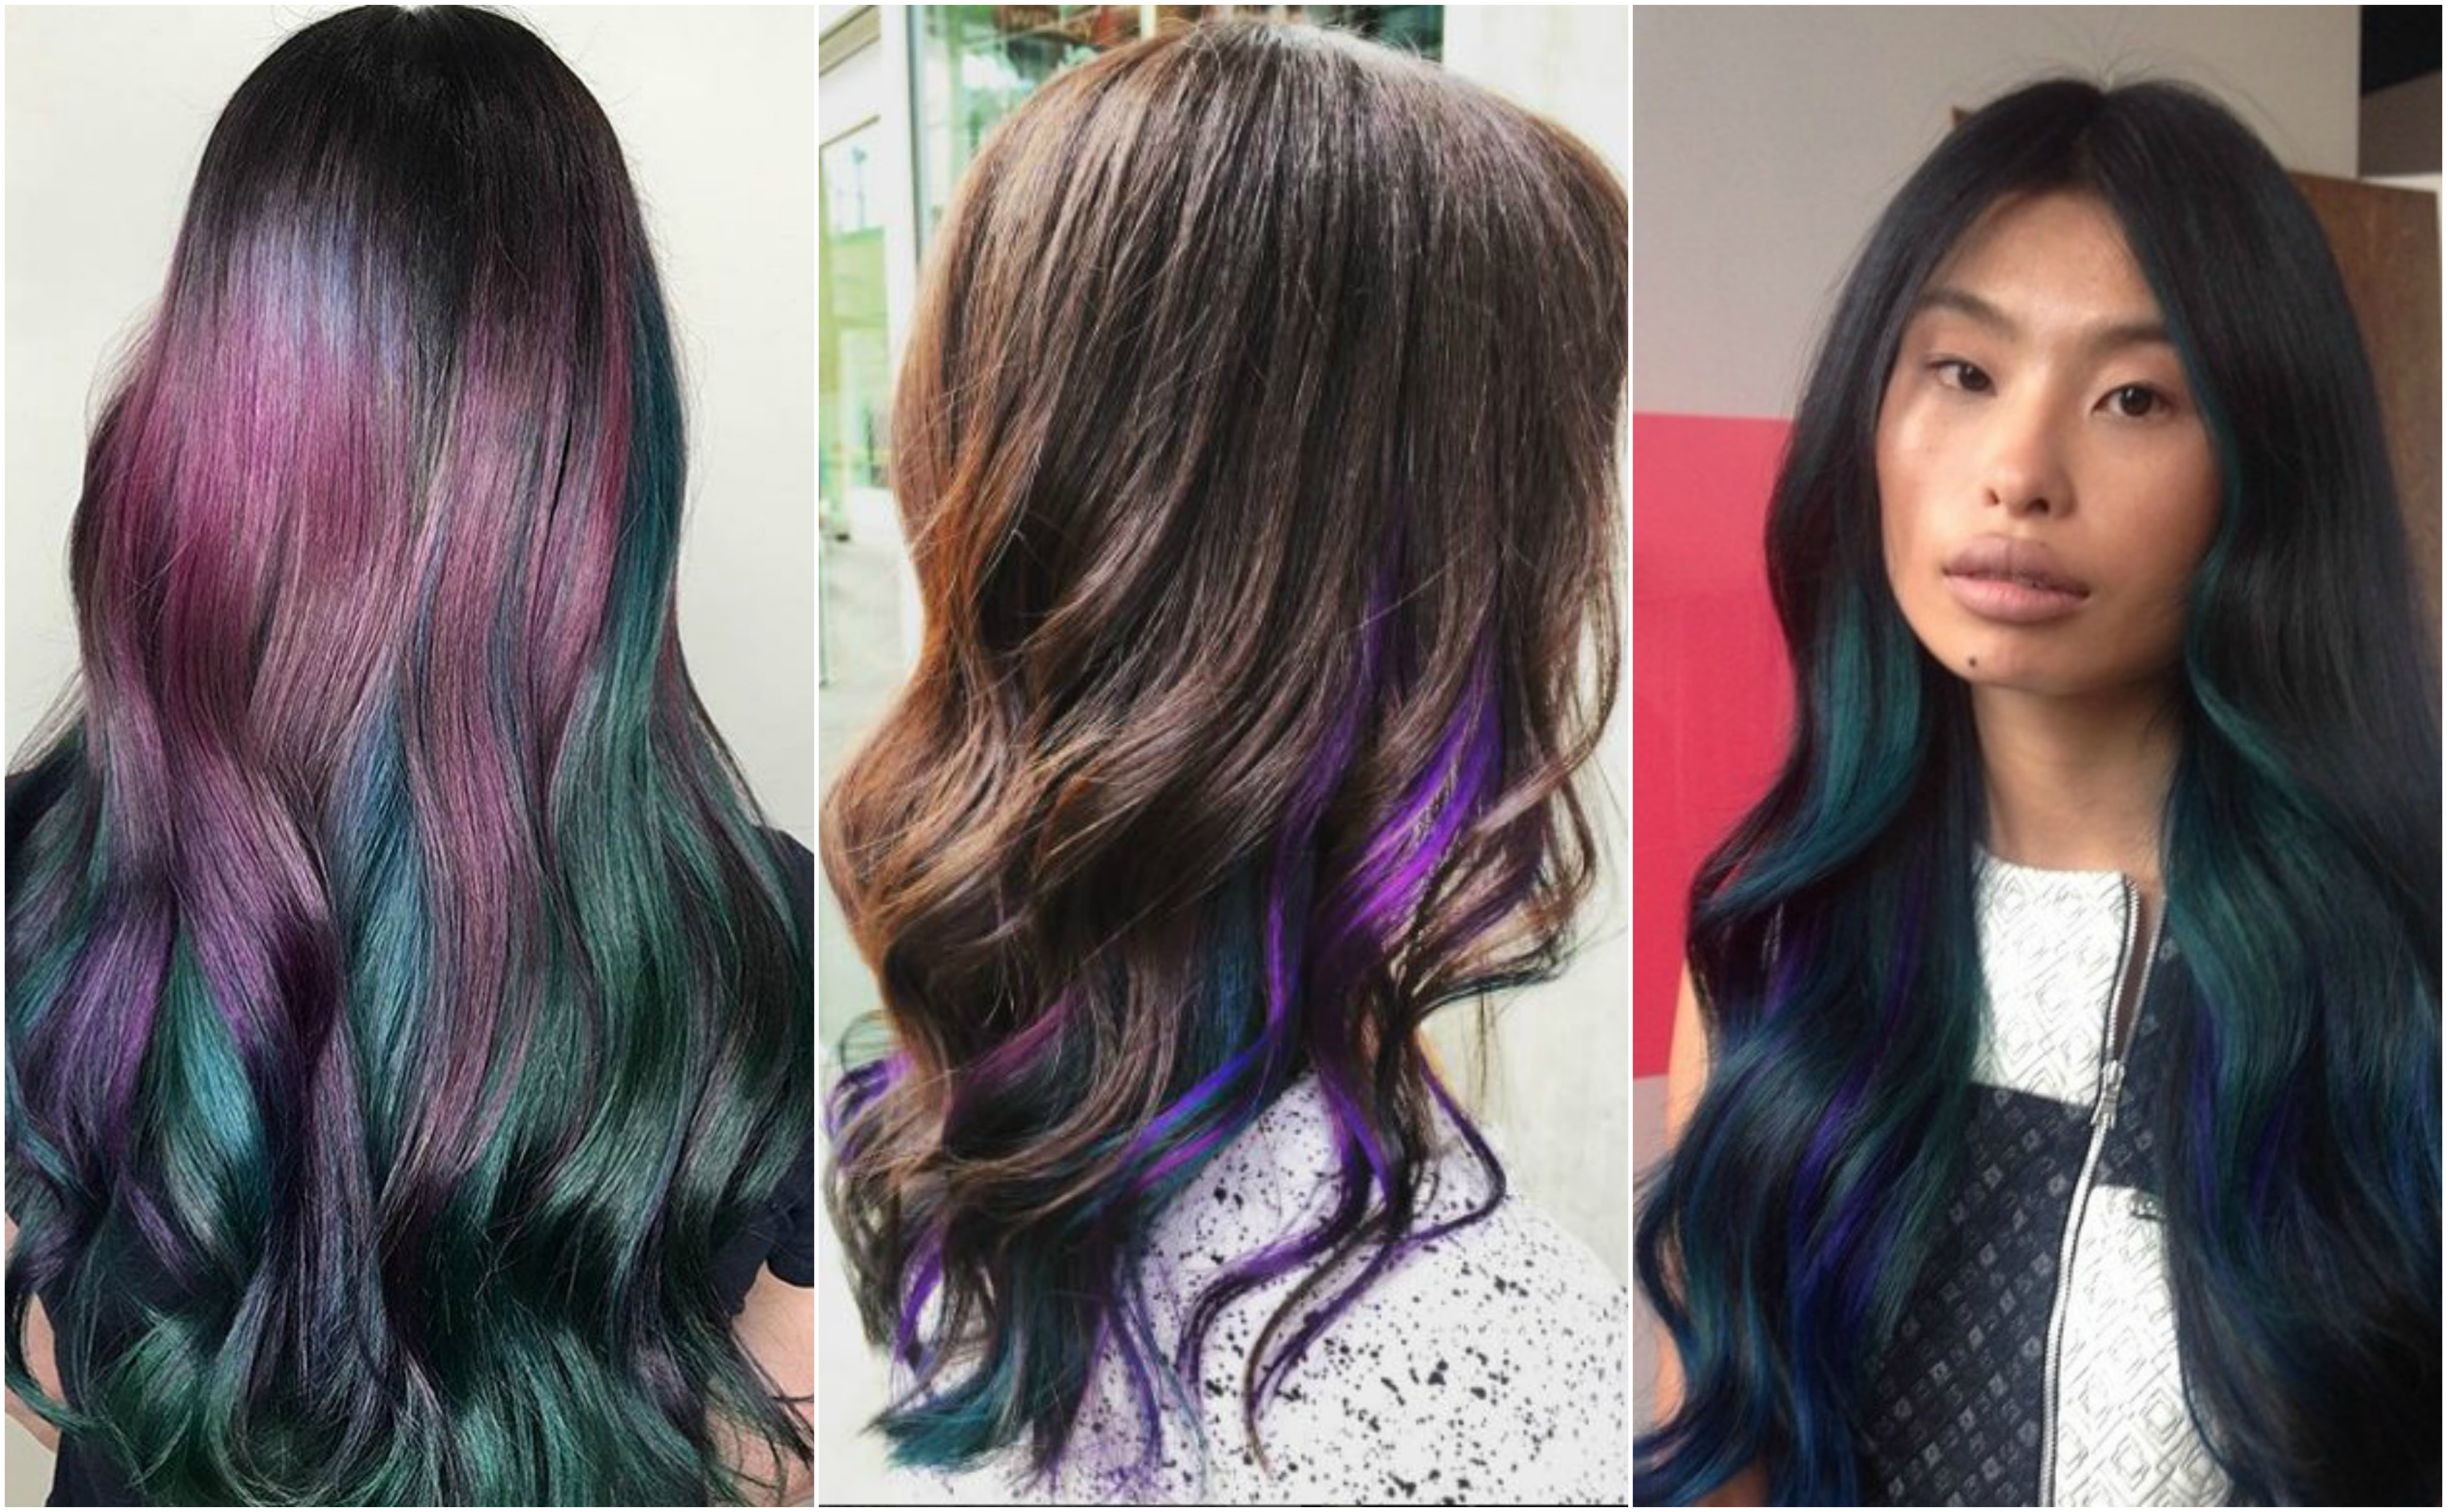 Oil slick hair is much cooler than it sounds